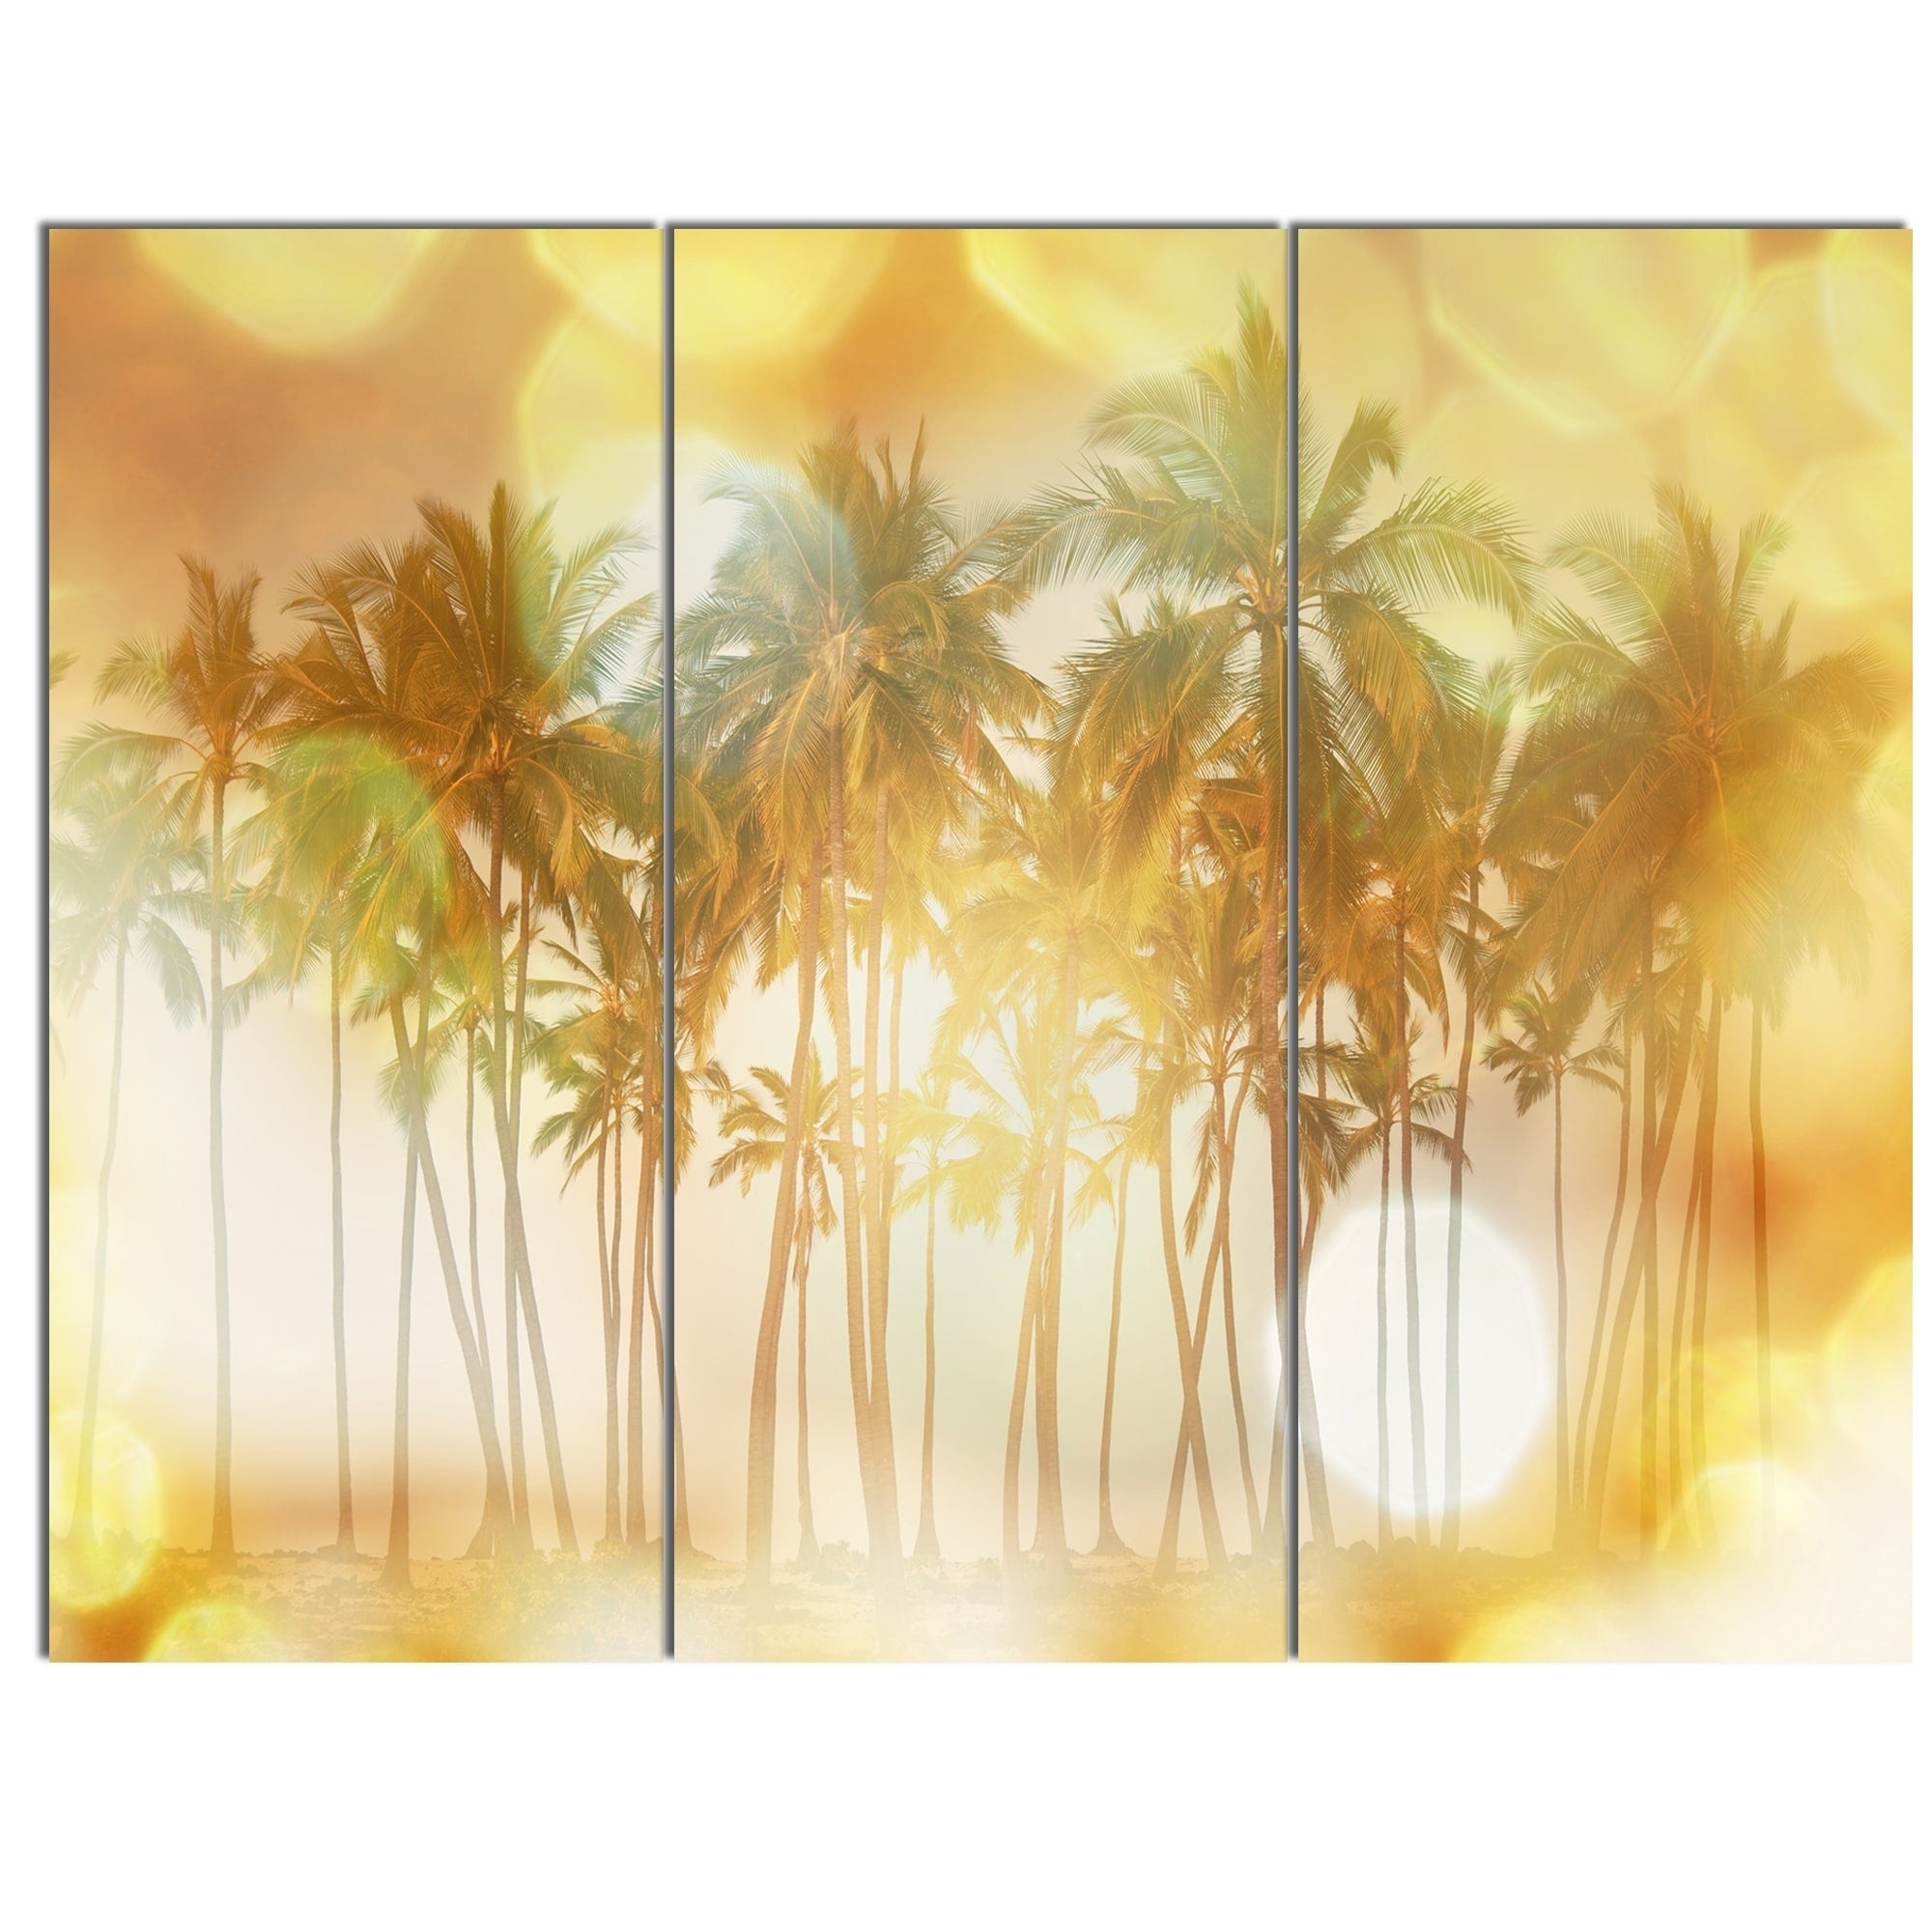 Lovely Metal Palm Wall Decor Contemporary - The Wall Art ...